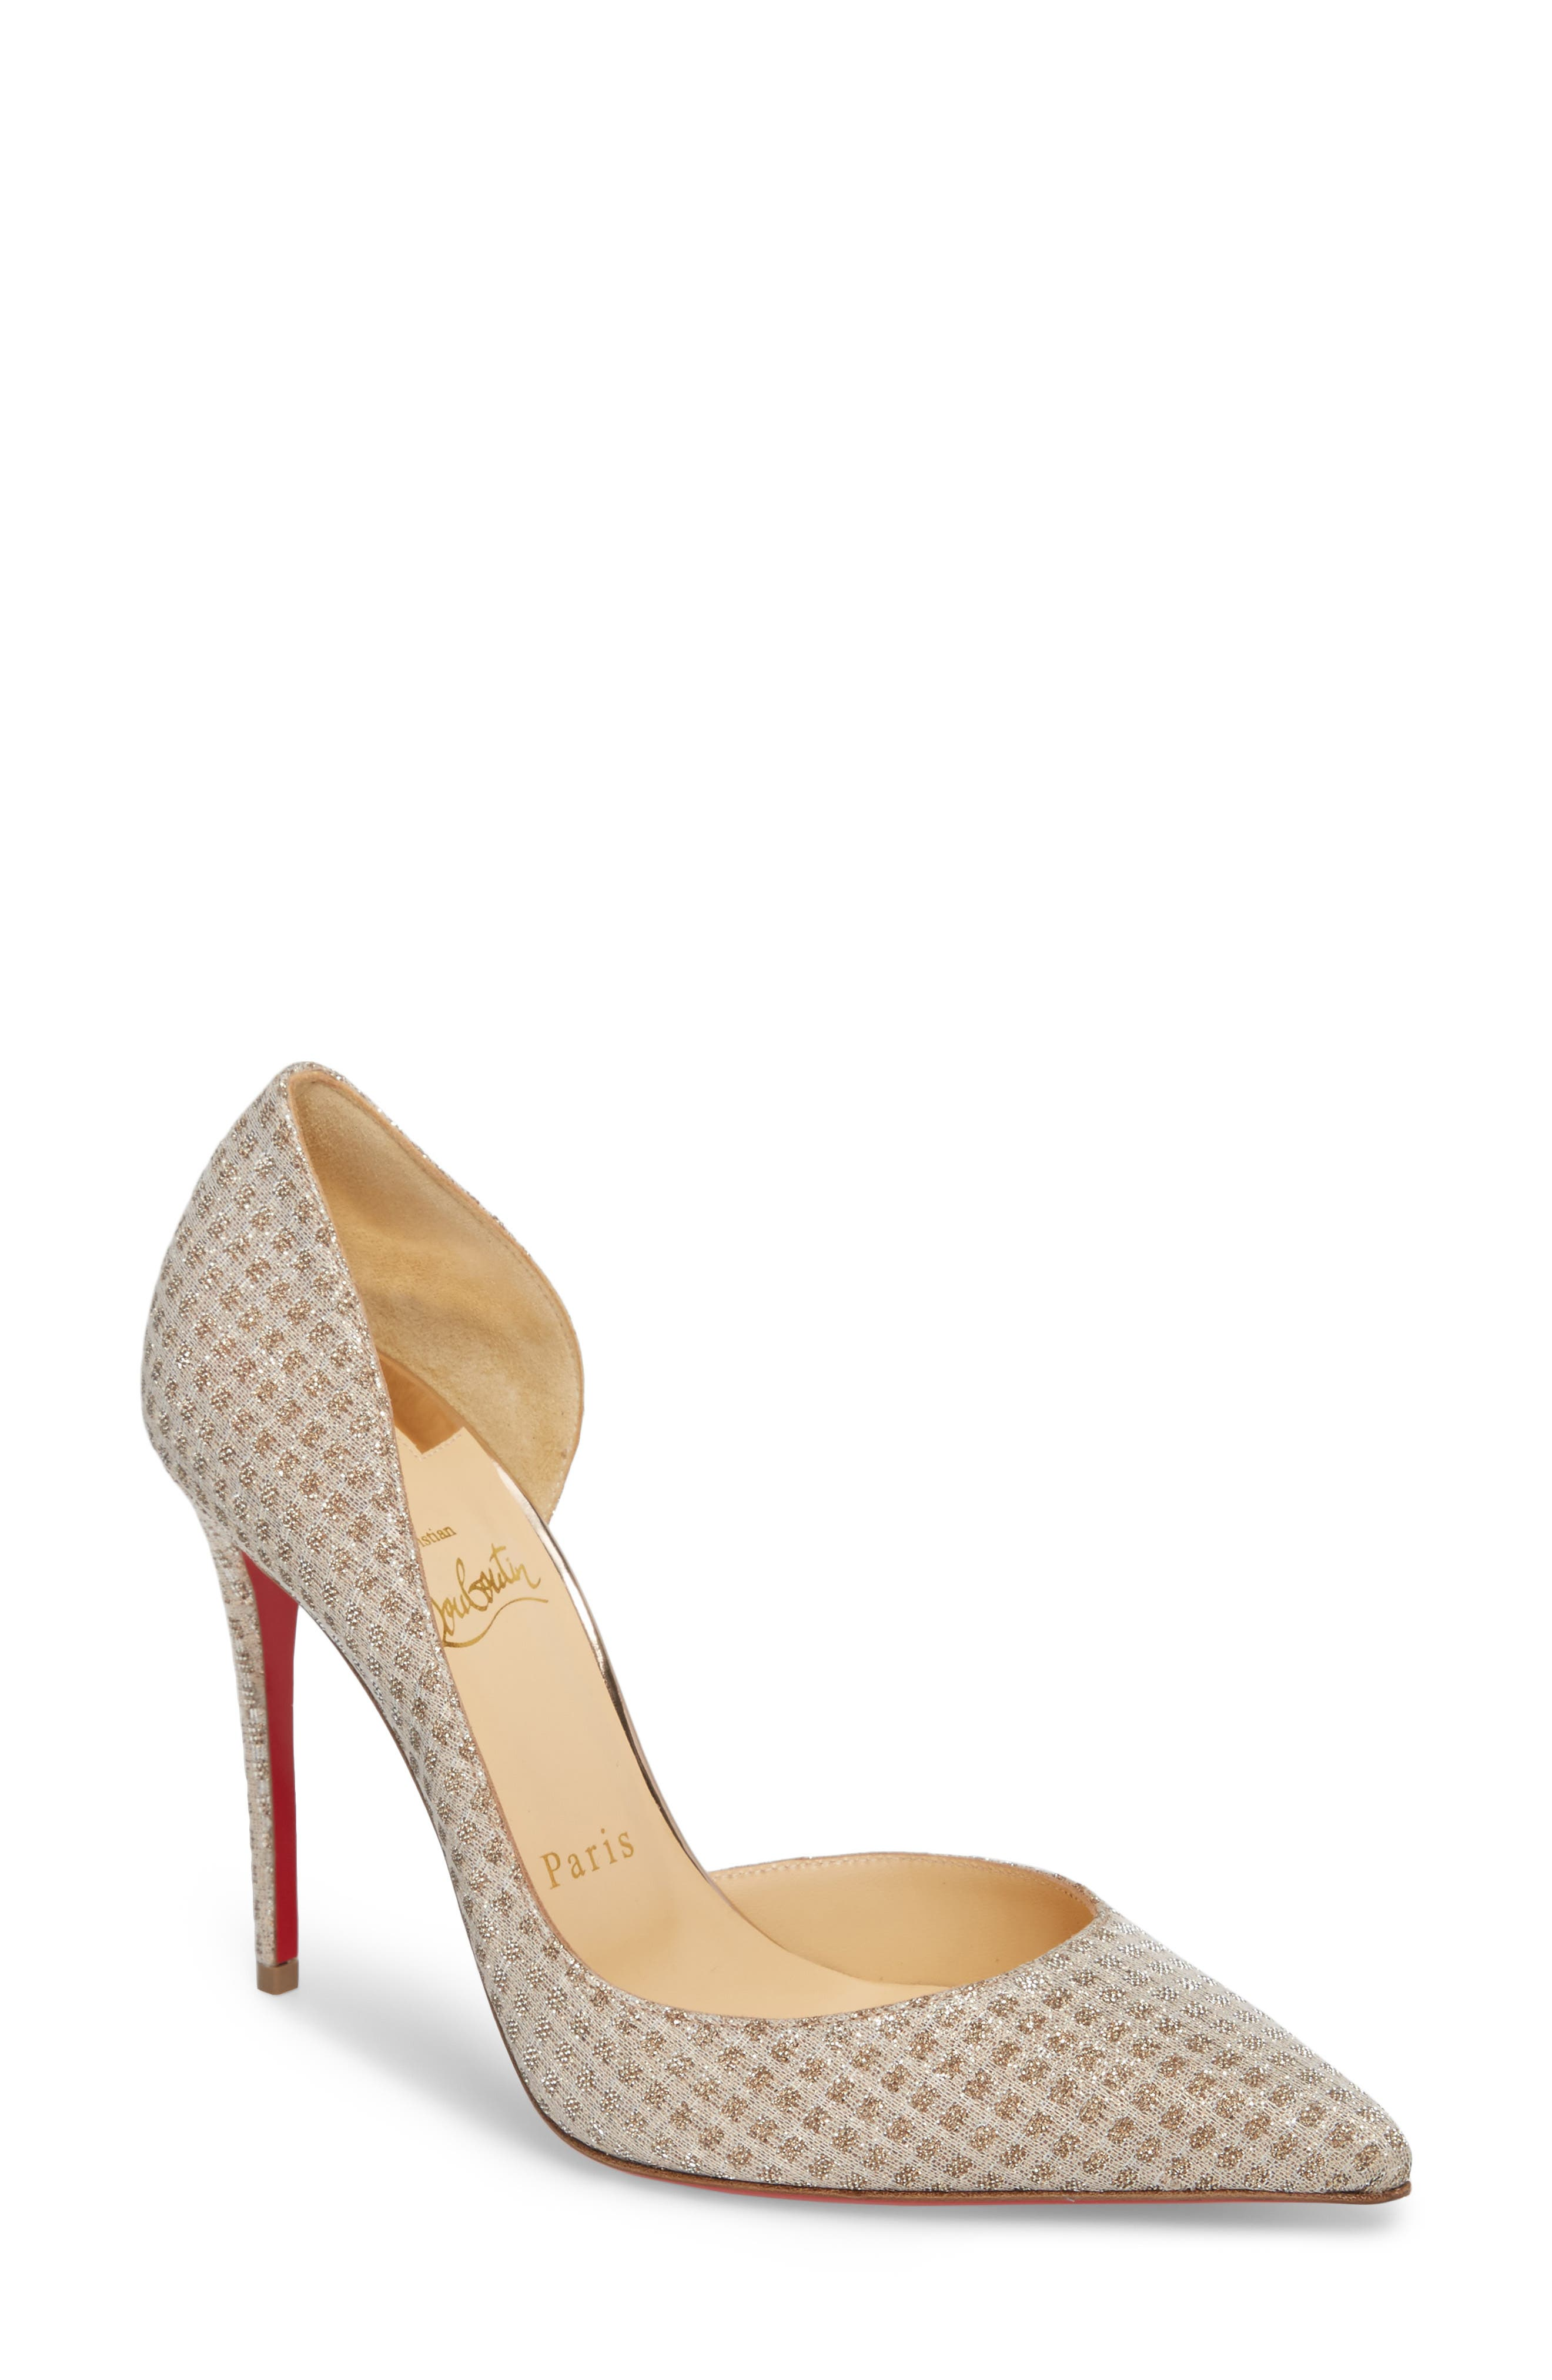 Iriza Half d'Orsay Pump,                         Main,                         color, 250